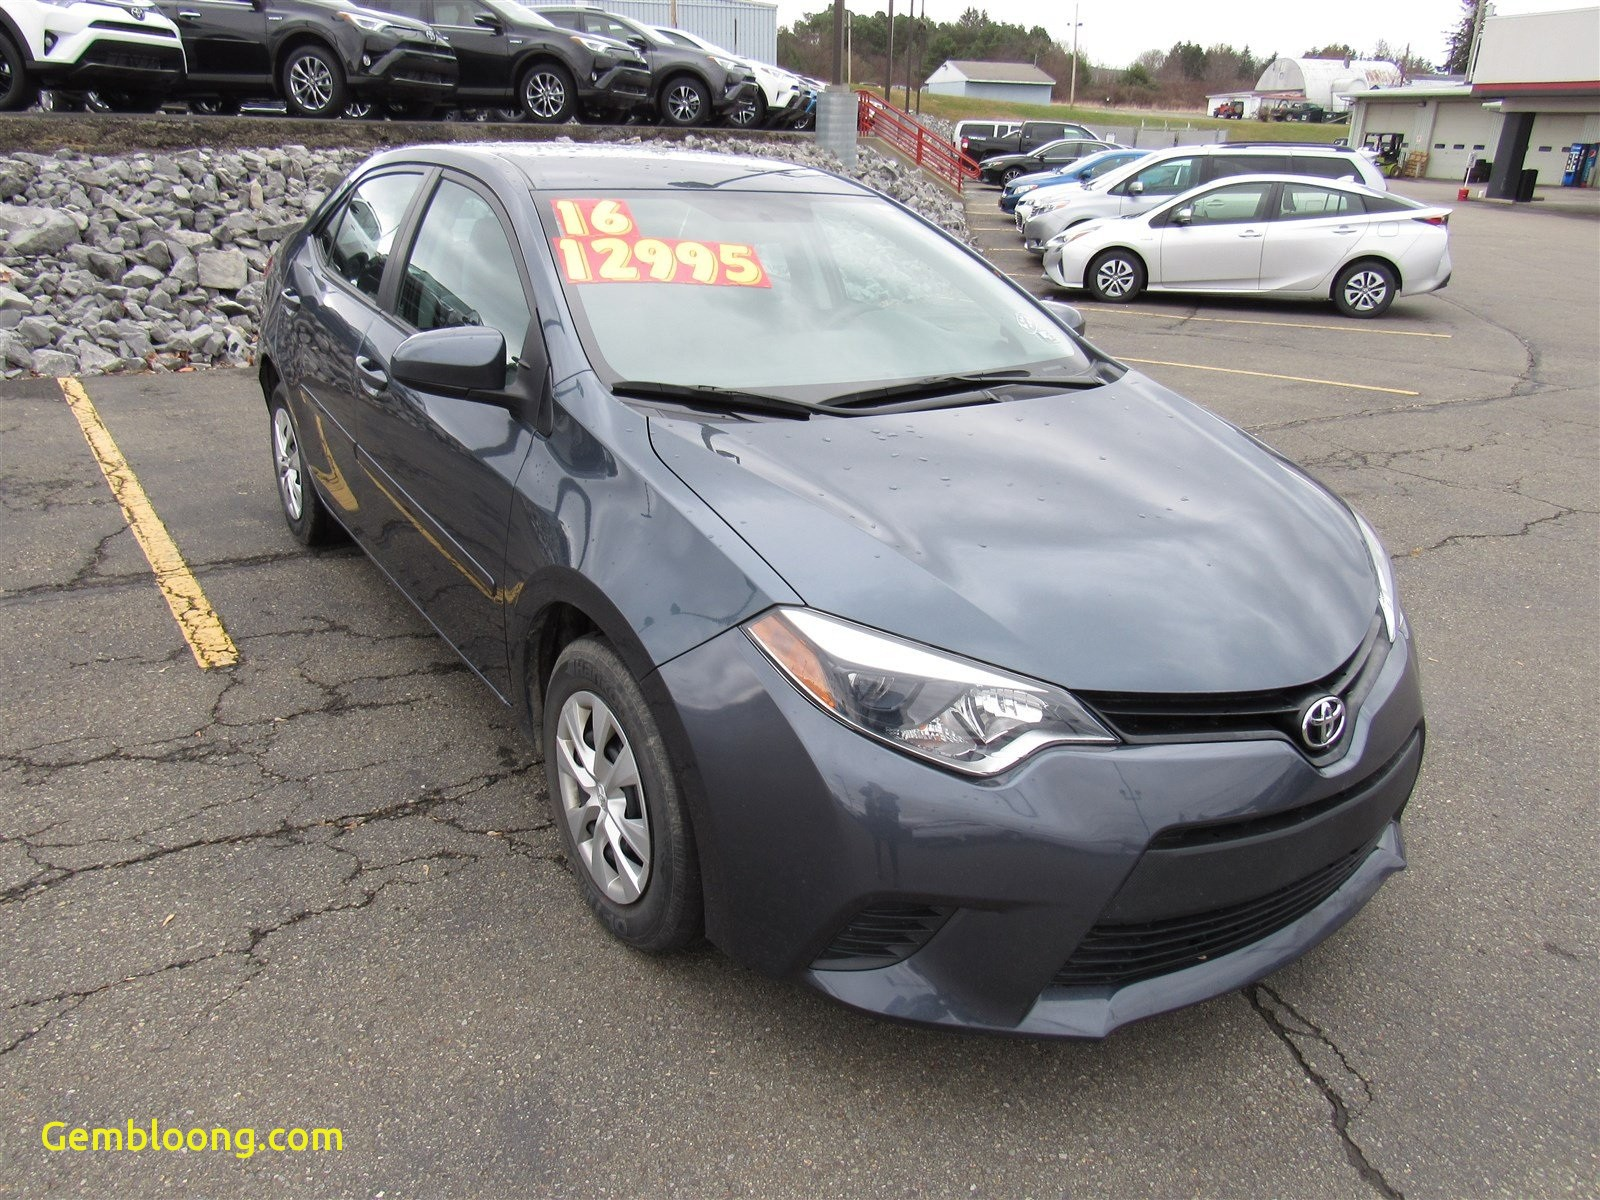 luxury used cars for sale near me toyota used cars. Black Bedroom Furniture Sets. Home Design Ideas